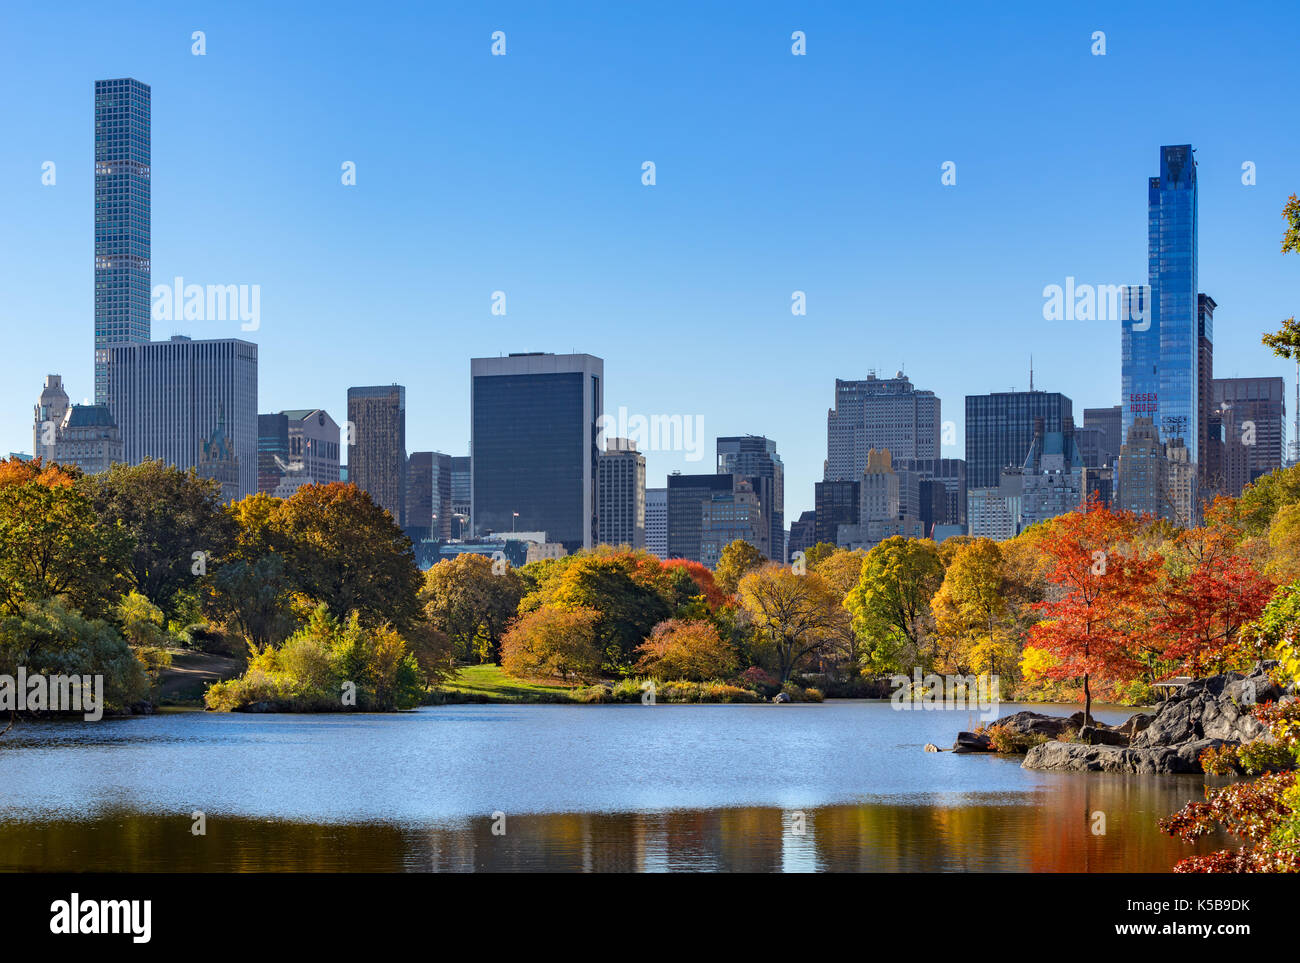 Fallen im Central Park am See mit Midtown Wolkenkratzer. New York City Stockbild